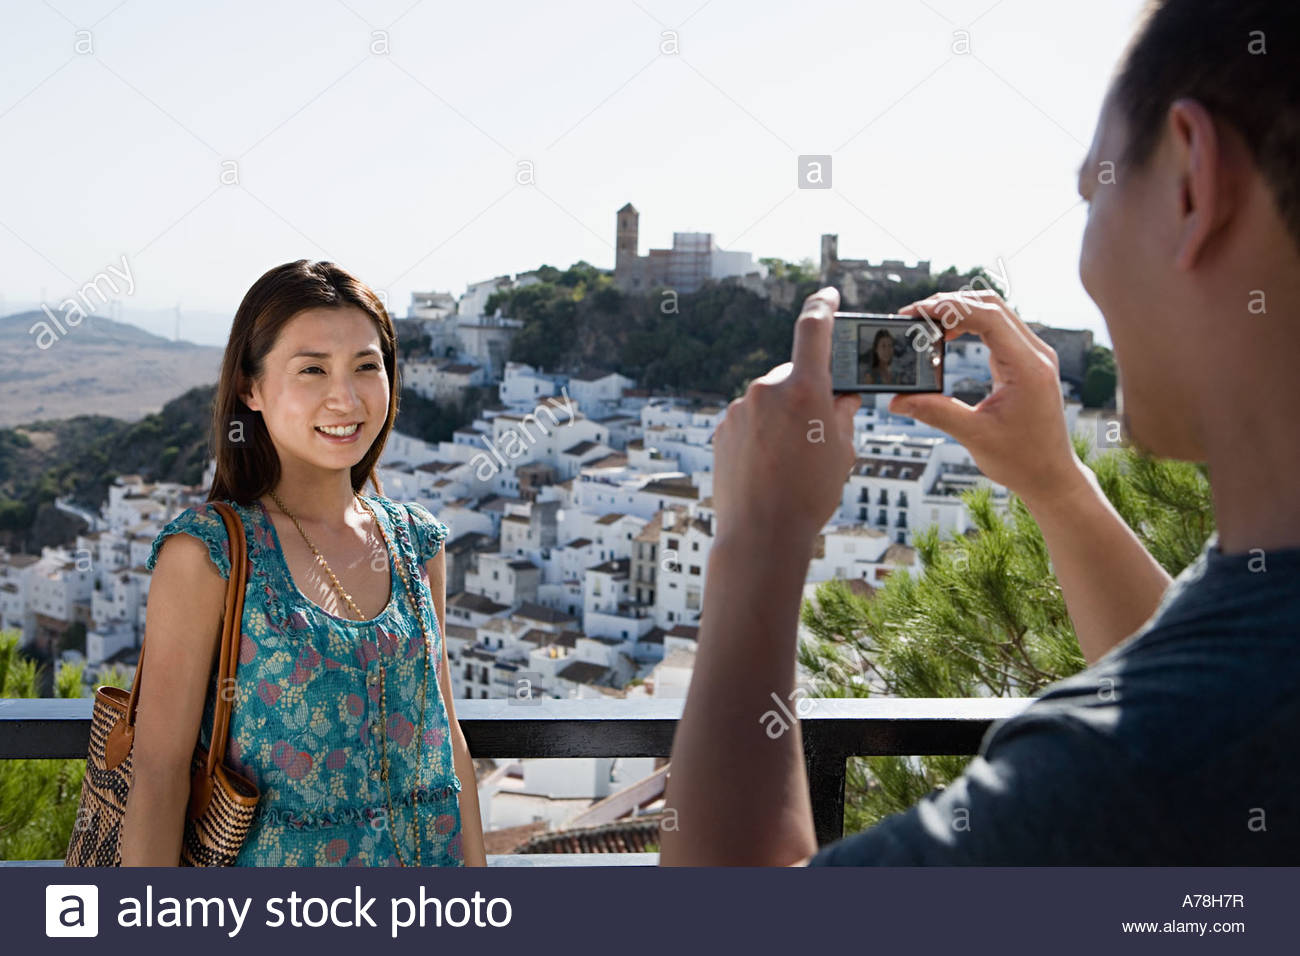 Couple taking pictures Photo Stock